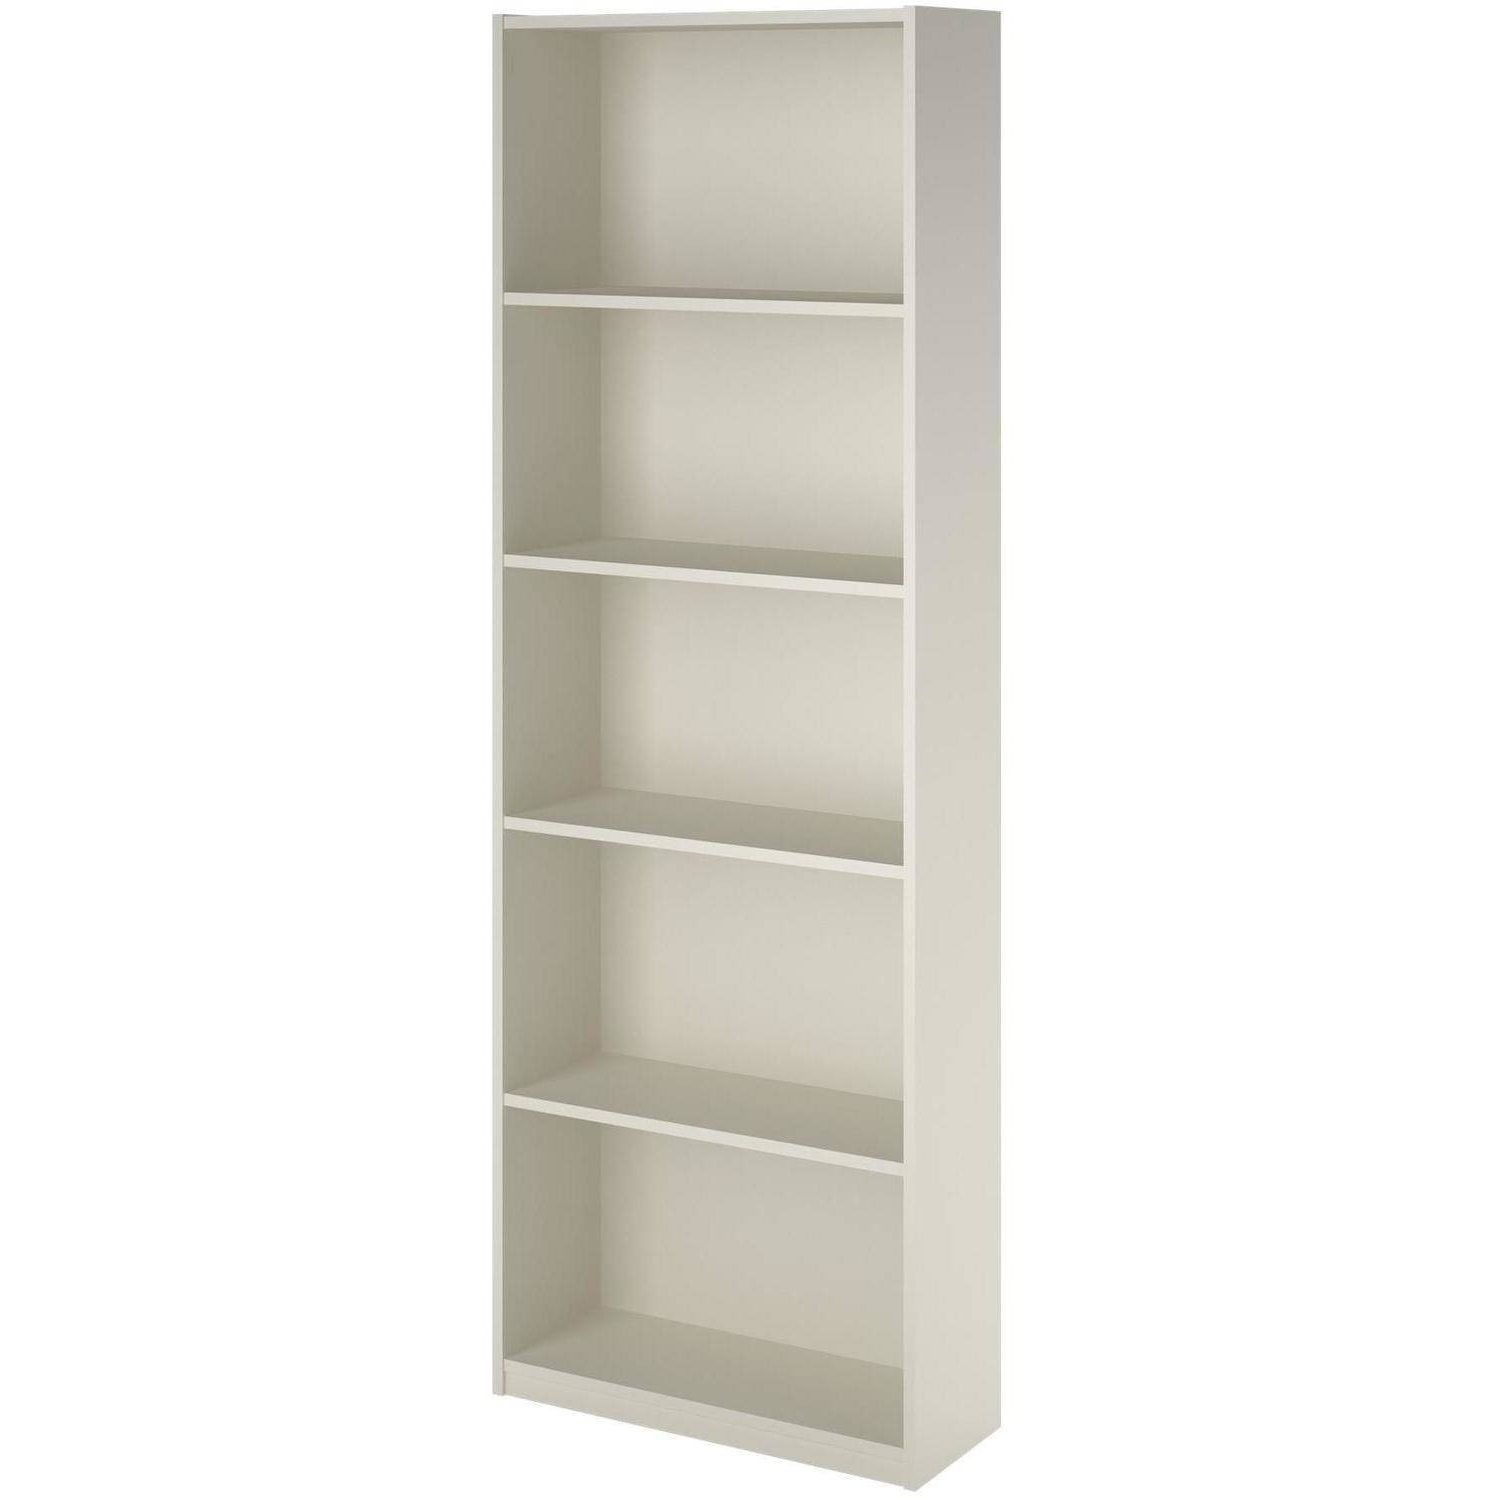 Furniture : Amazing Bookcases From Walmart Awesome Ameriwood 5 In Widely Used 5 Shelf Bookcases (Gallery 7 of 15)